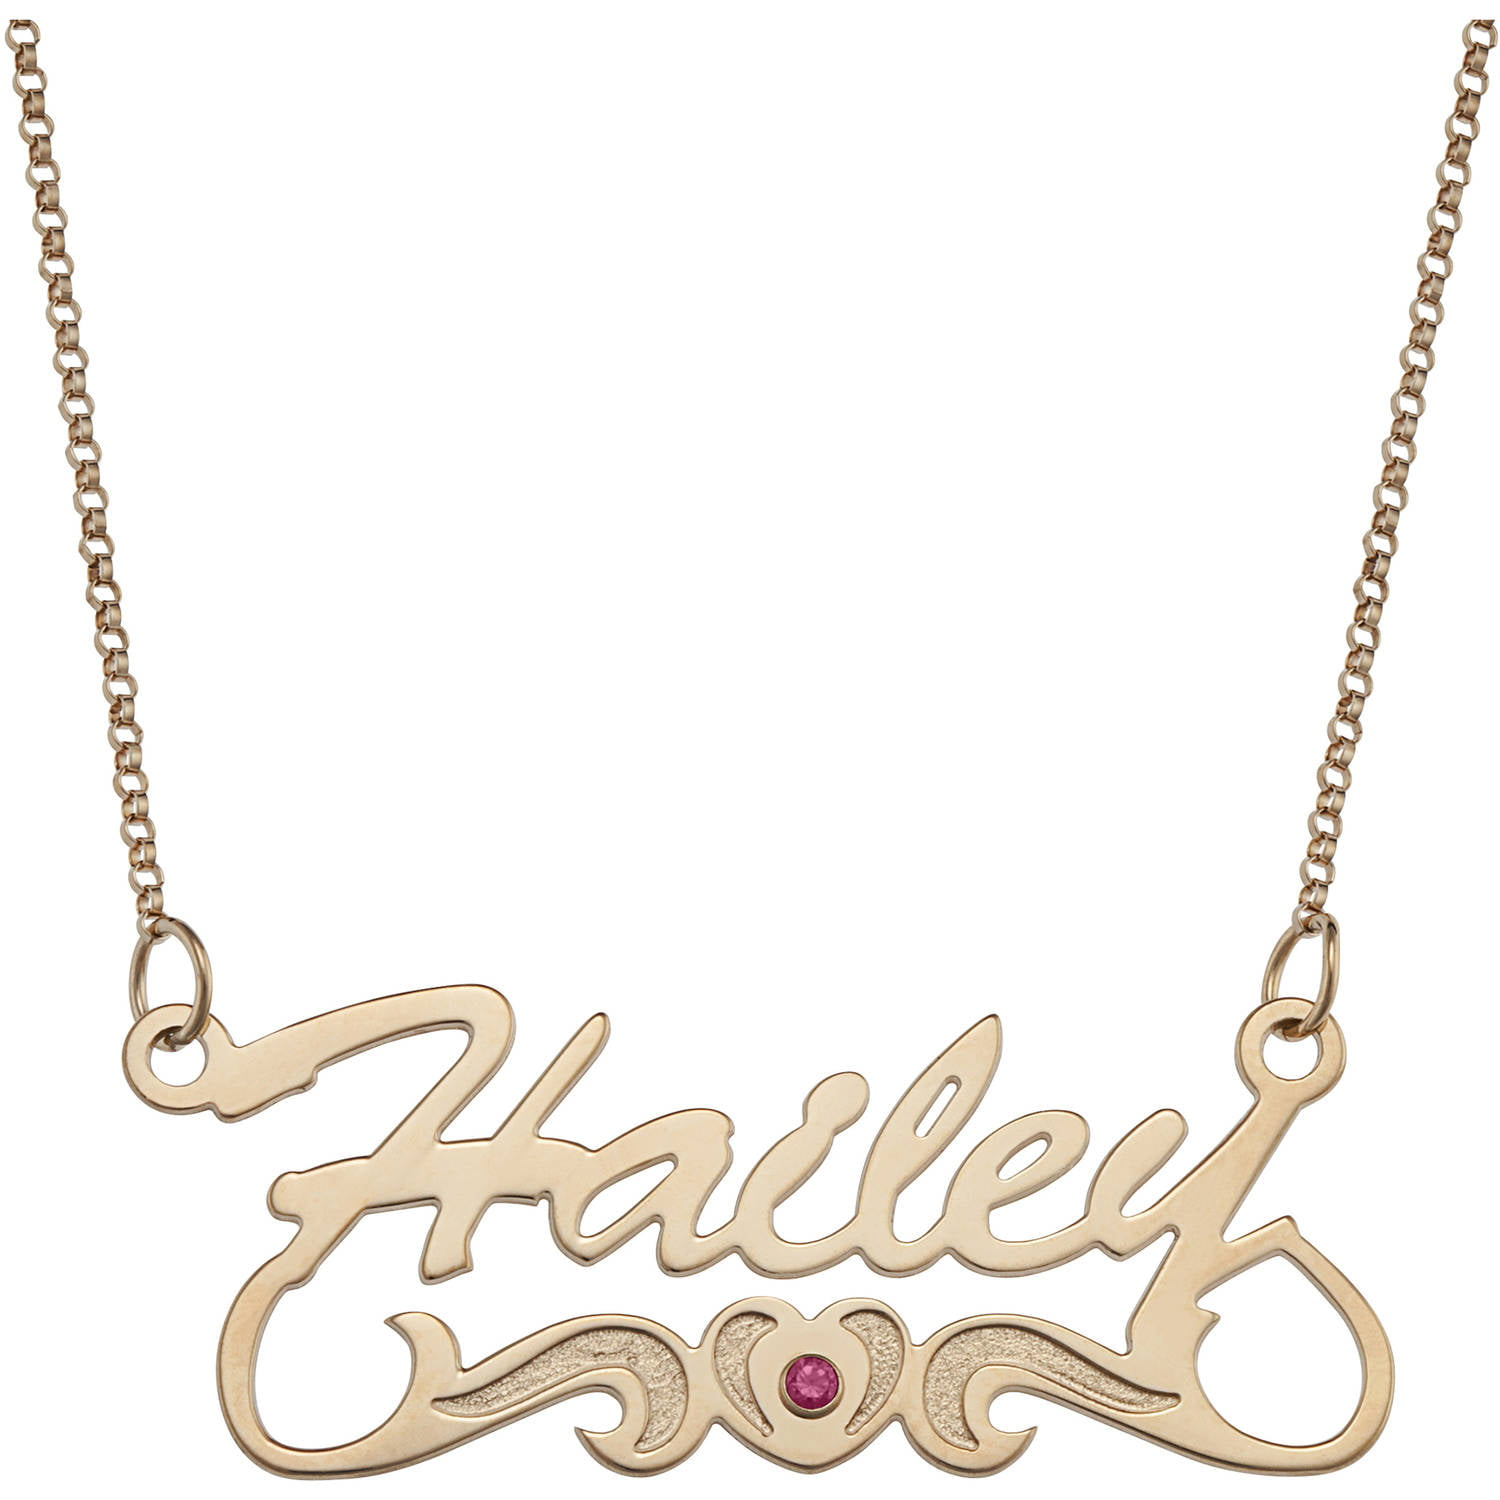 custom products presidents necklaces gold bubble pendant letter